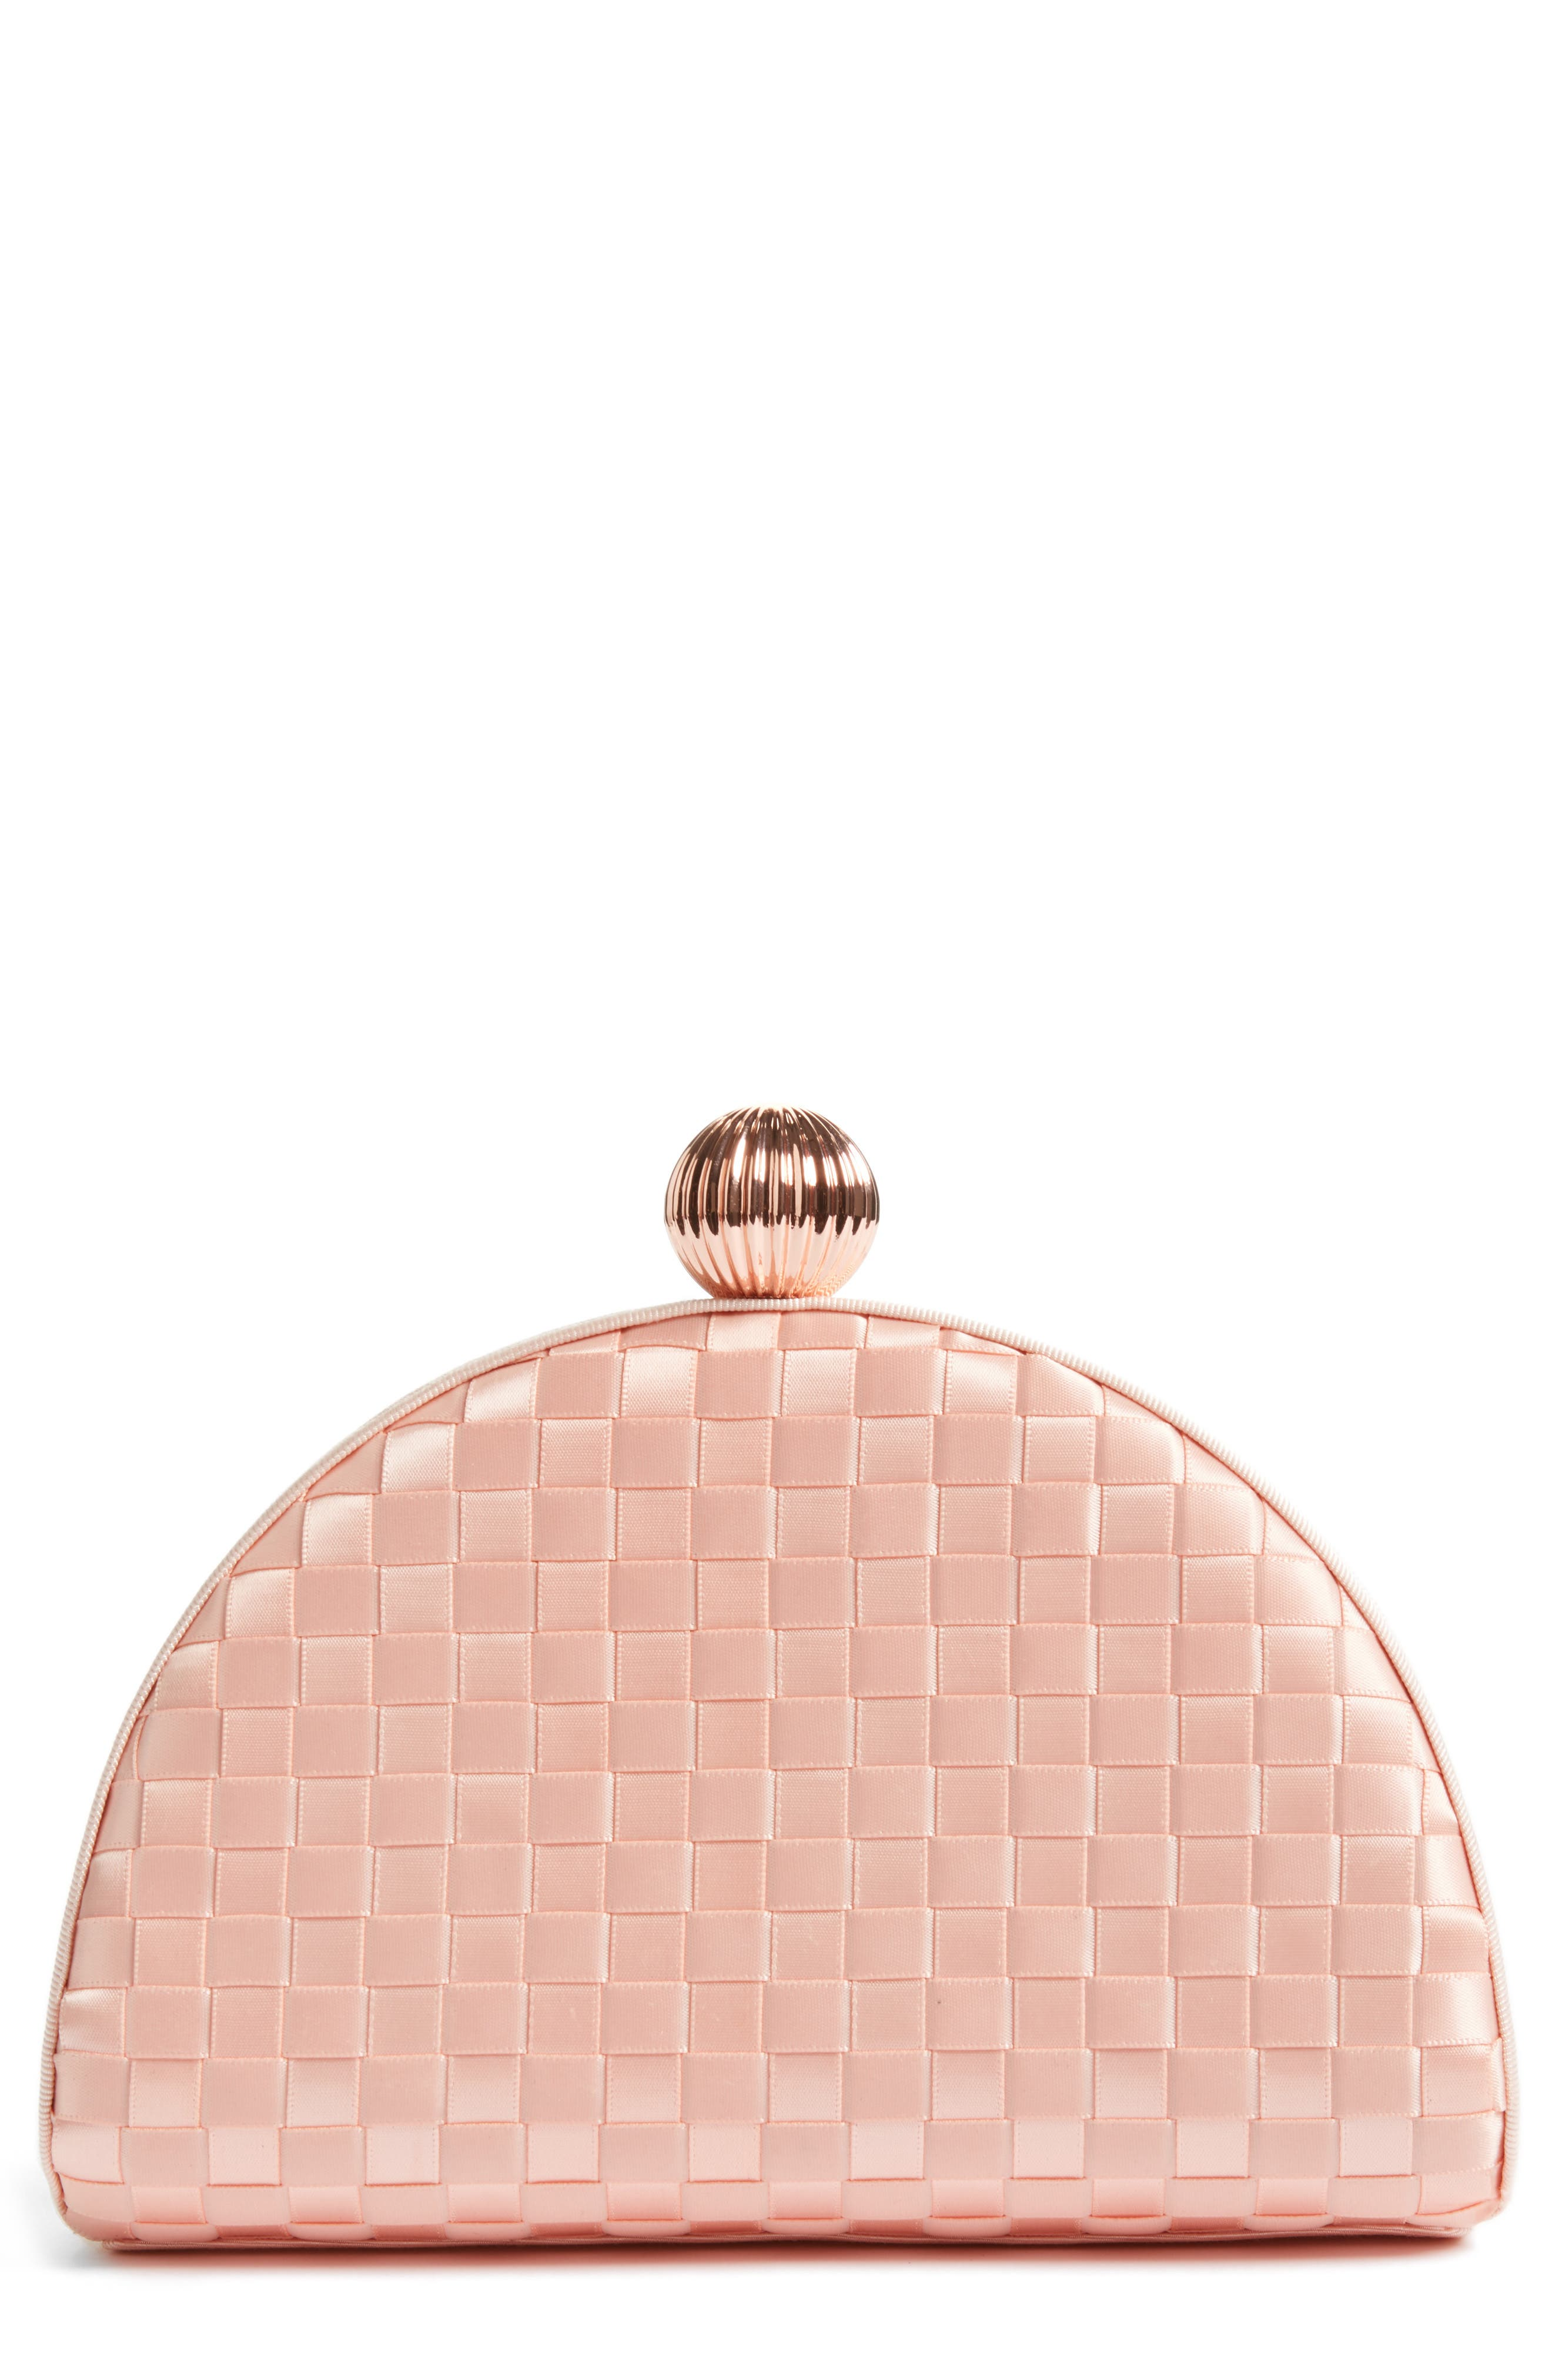 Alternate Image 1 Selected - Ted Baker London Woven Dome Clutch